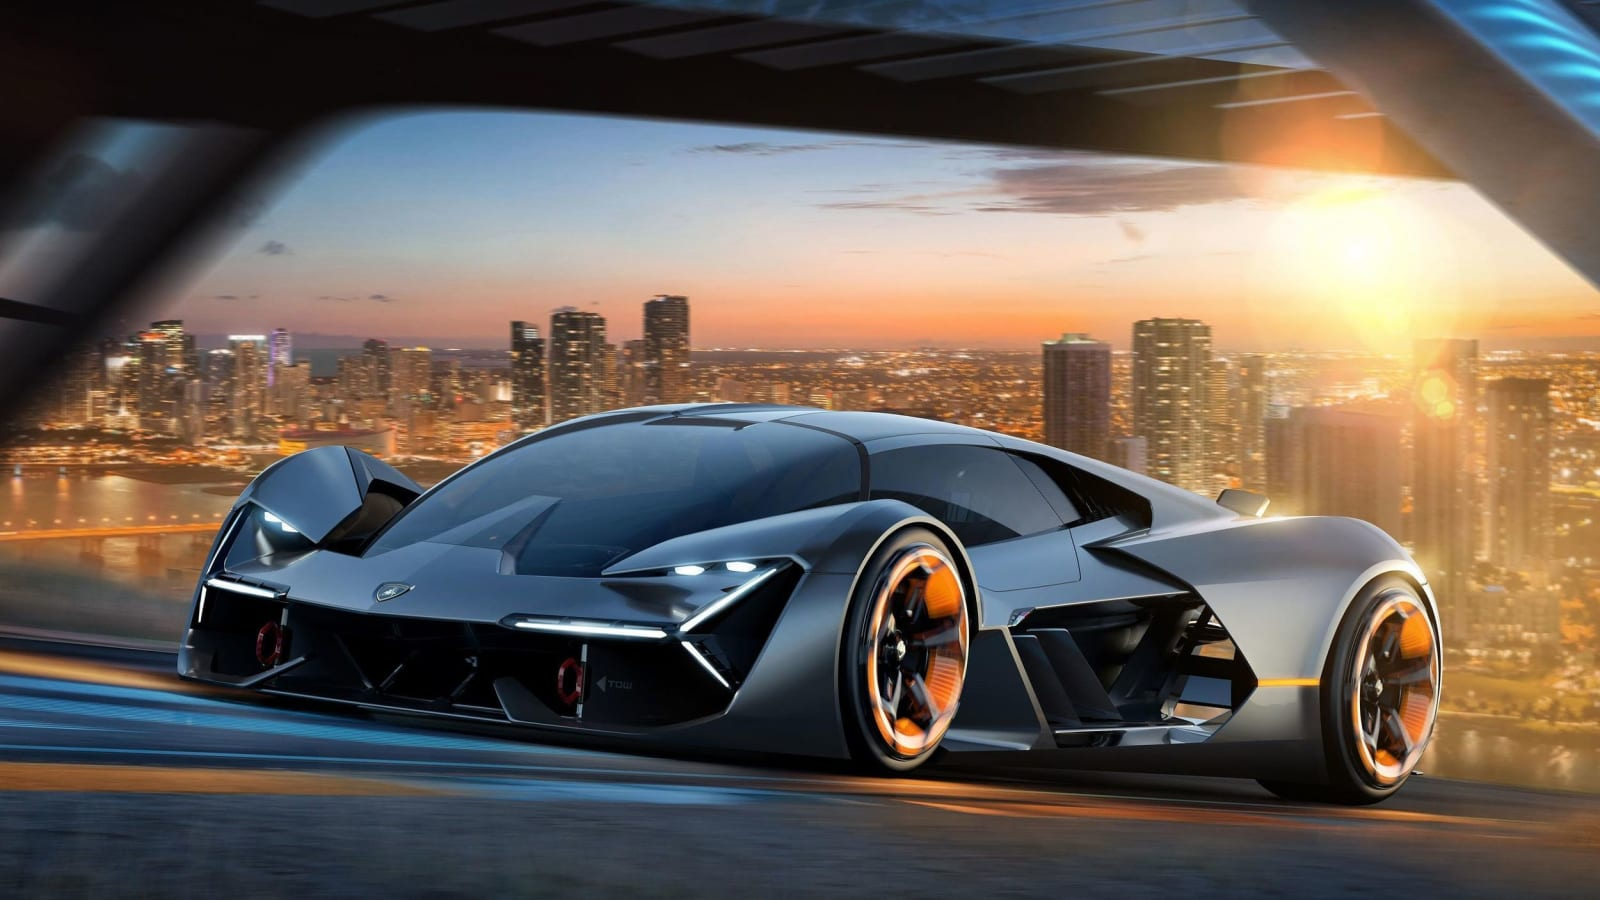 Lamborghini Lb48h Hypercar Due Next Year You Might Even Say It Glows